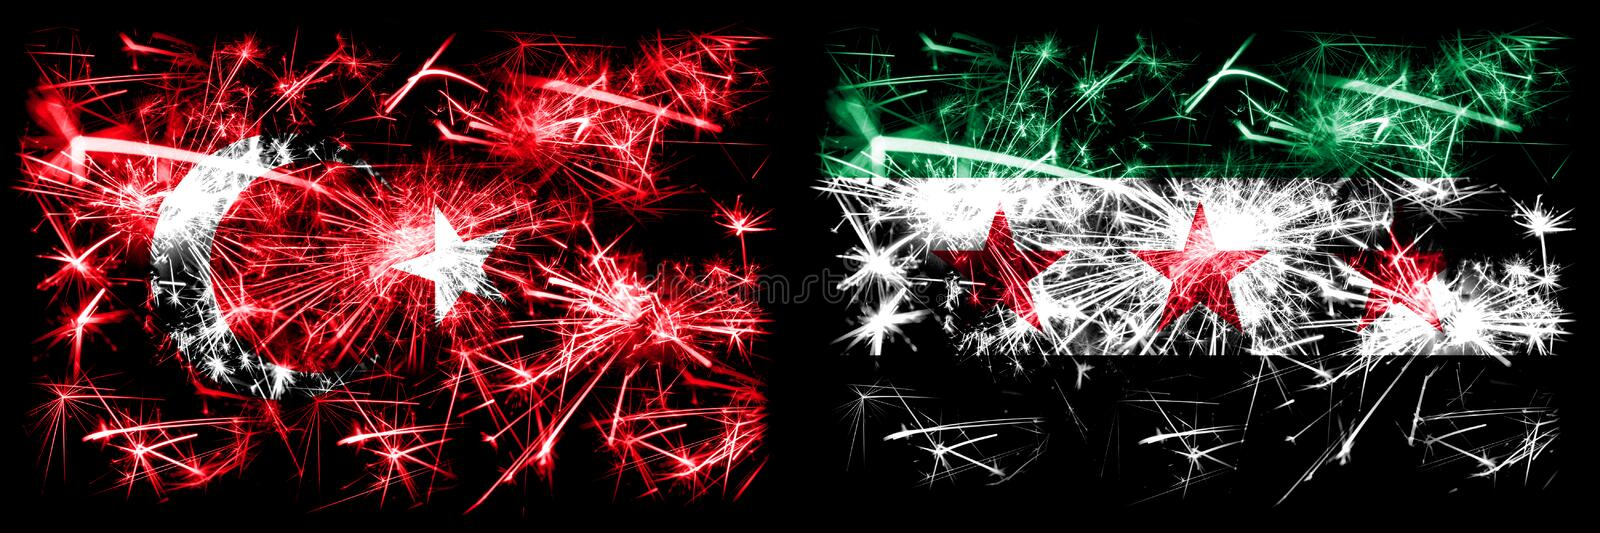 Turkey, Turkish vs Syria, Syrian Arab Republic, three stars, observed New Year celebration sparkling fireworks flags concept. Background. Combination of two stock illustration